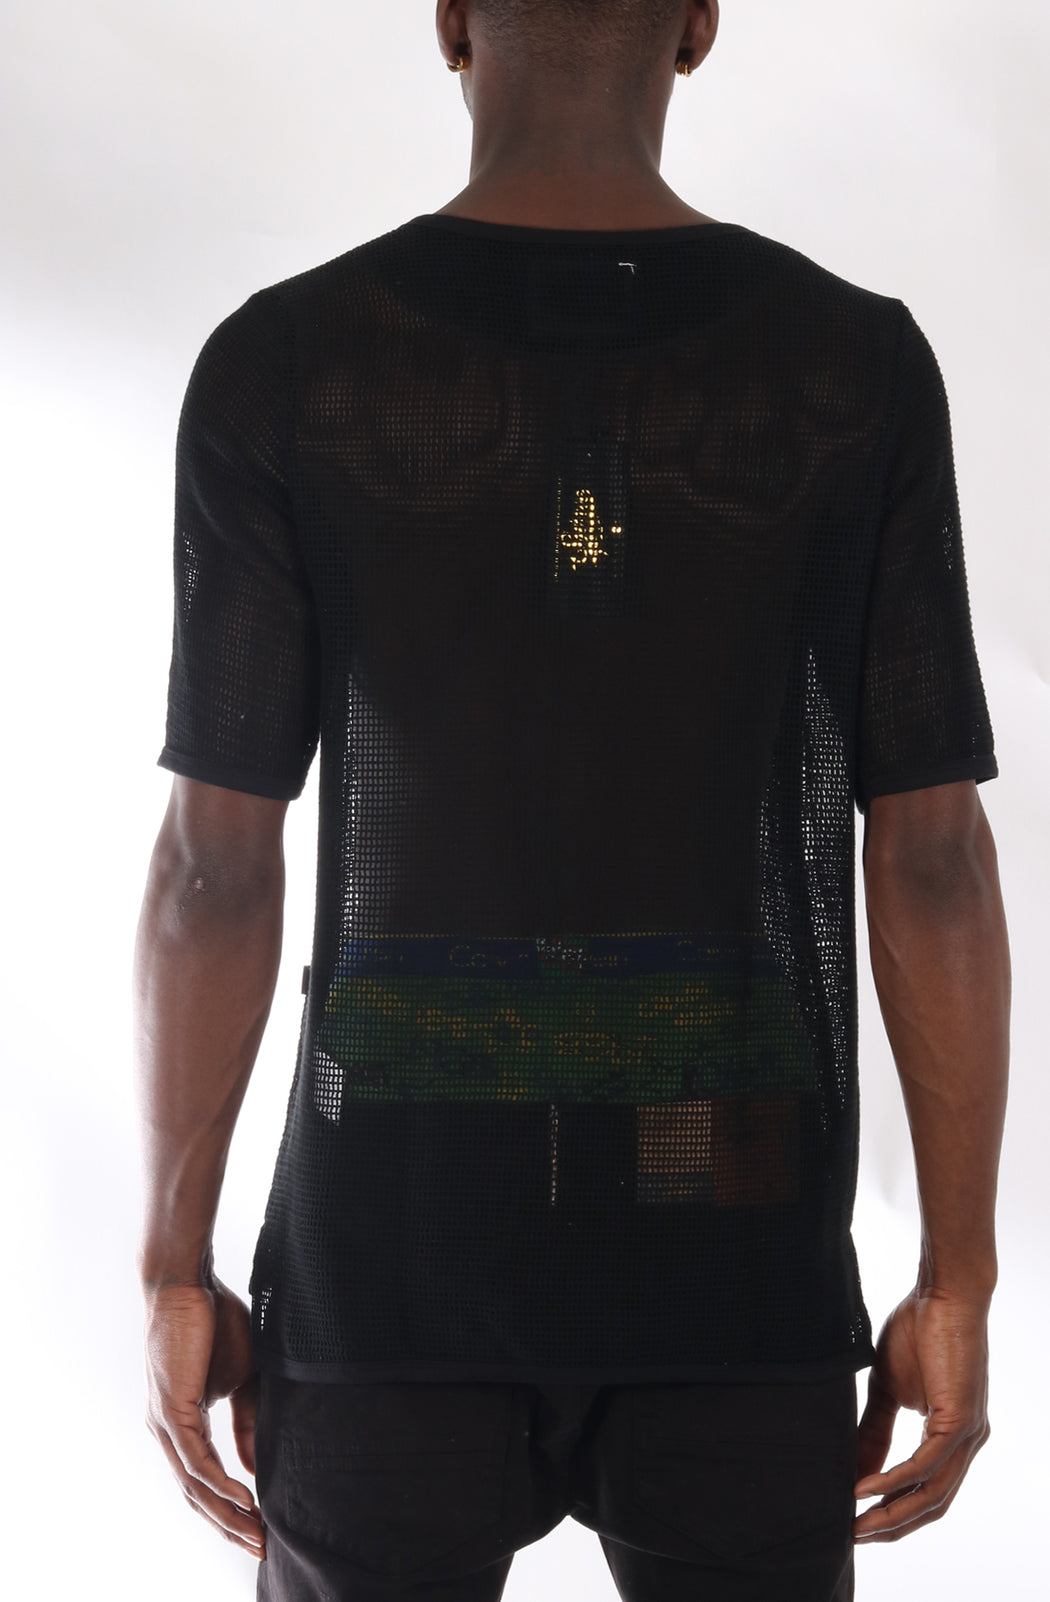 S.F.C Premium Cotton Mesh T-shirt With Finely Finished Edge In Black (STY HT-1030-BLACK)